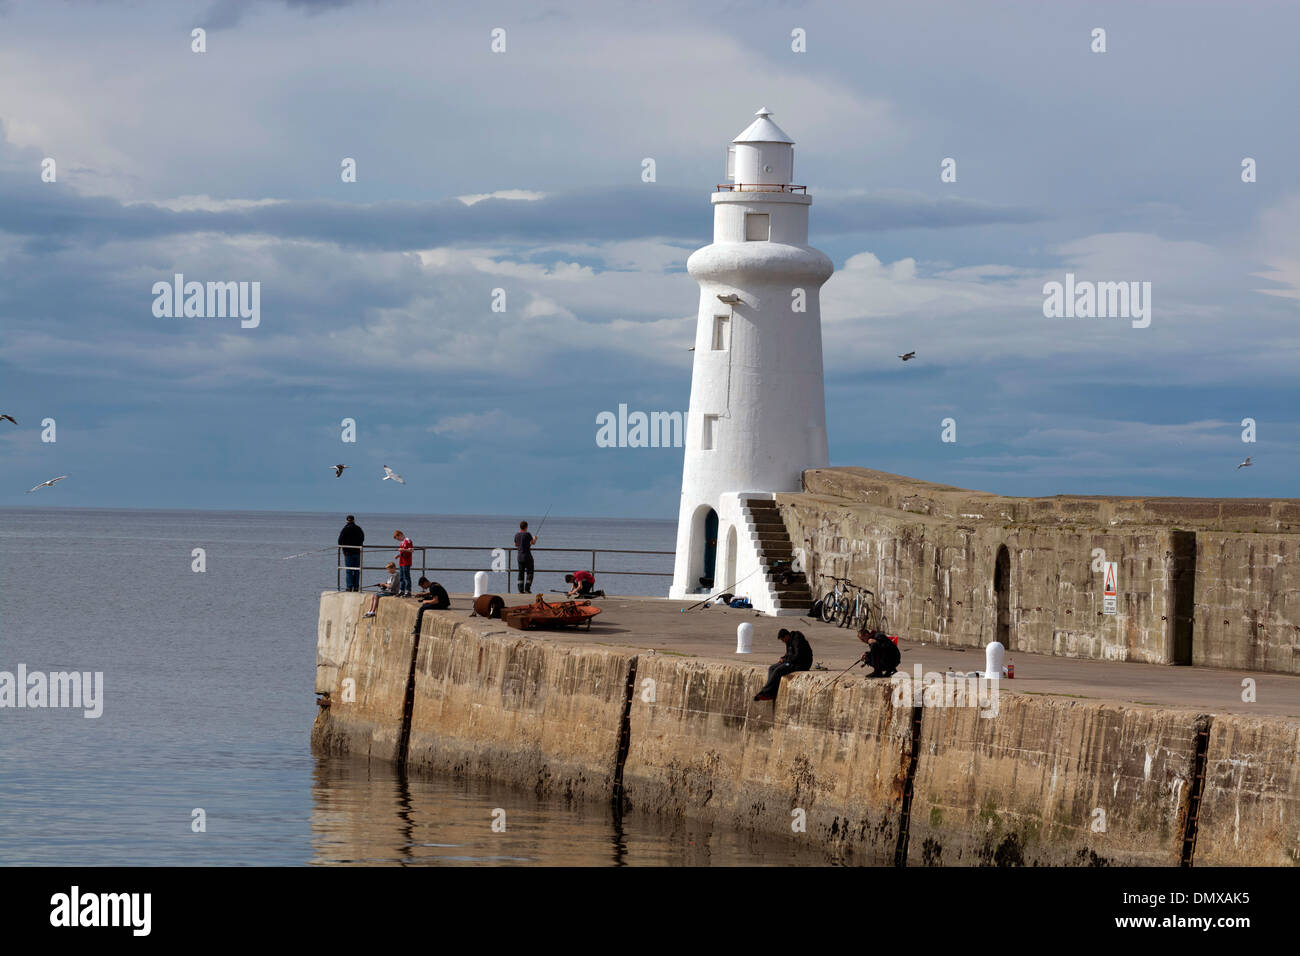 La pêche en mer phare macduff pier côte de Moray Photo Stock